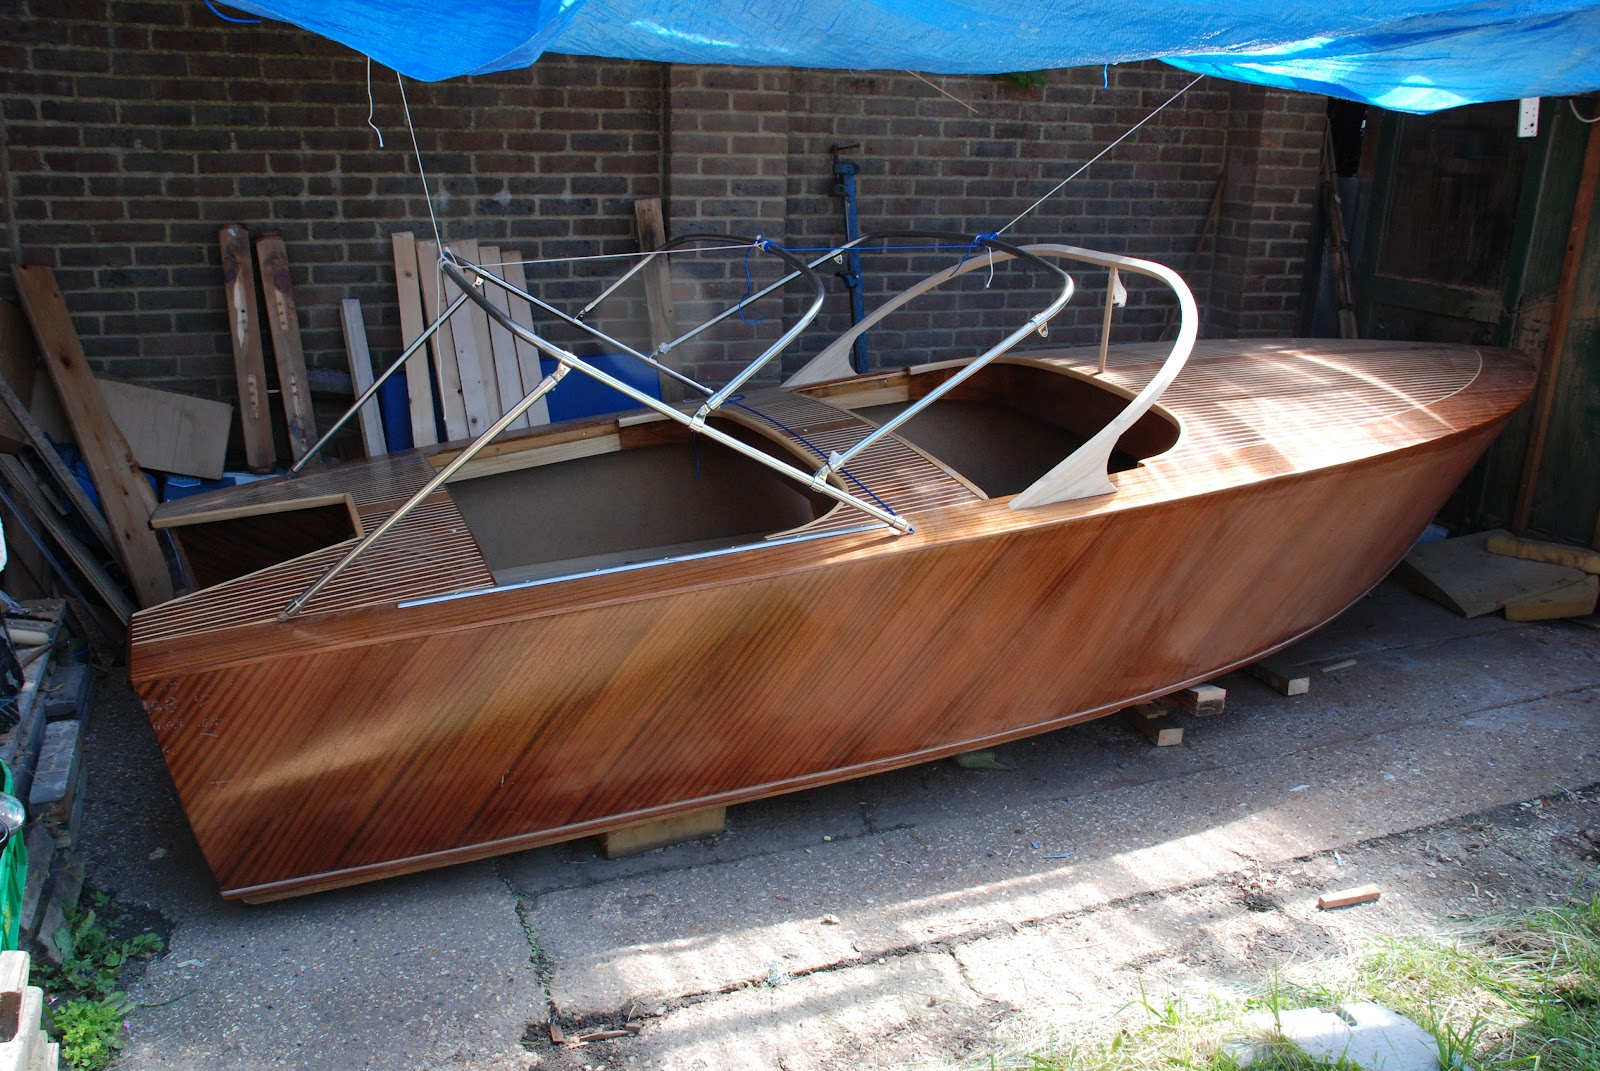 Its July Already And The UK Weather Is Rubbish For Varnishing Boats So Decided To Get On With Canopy Frame Instead I Bought This Stainless Steel